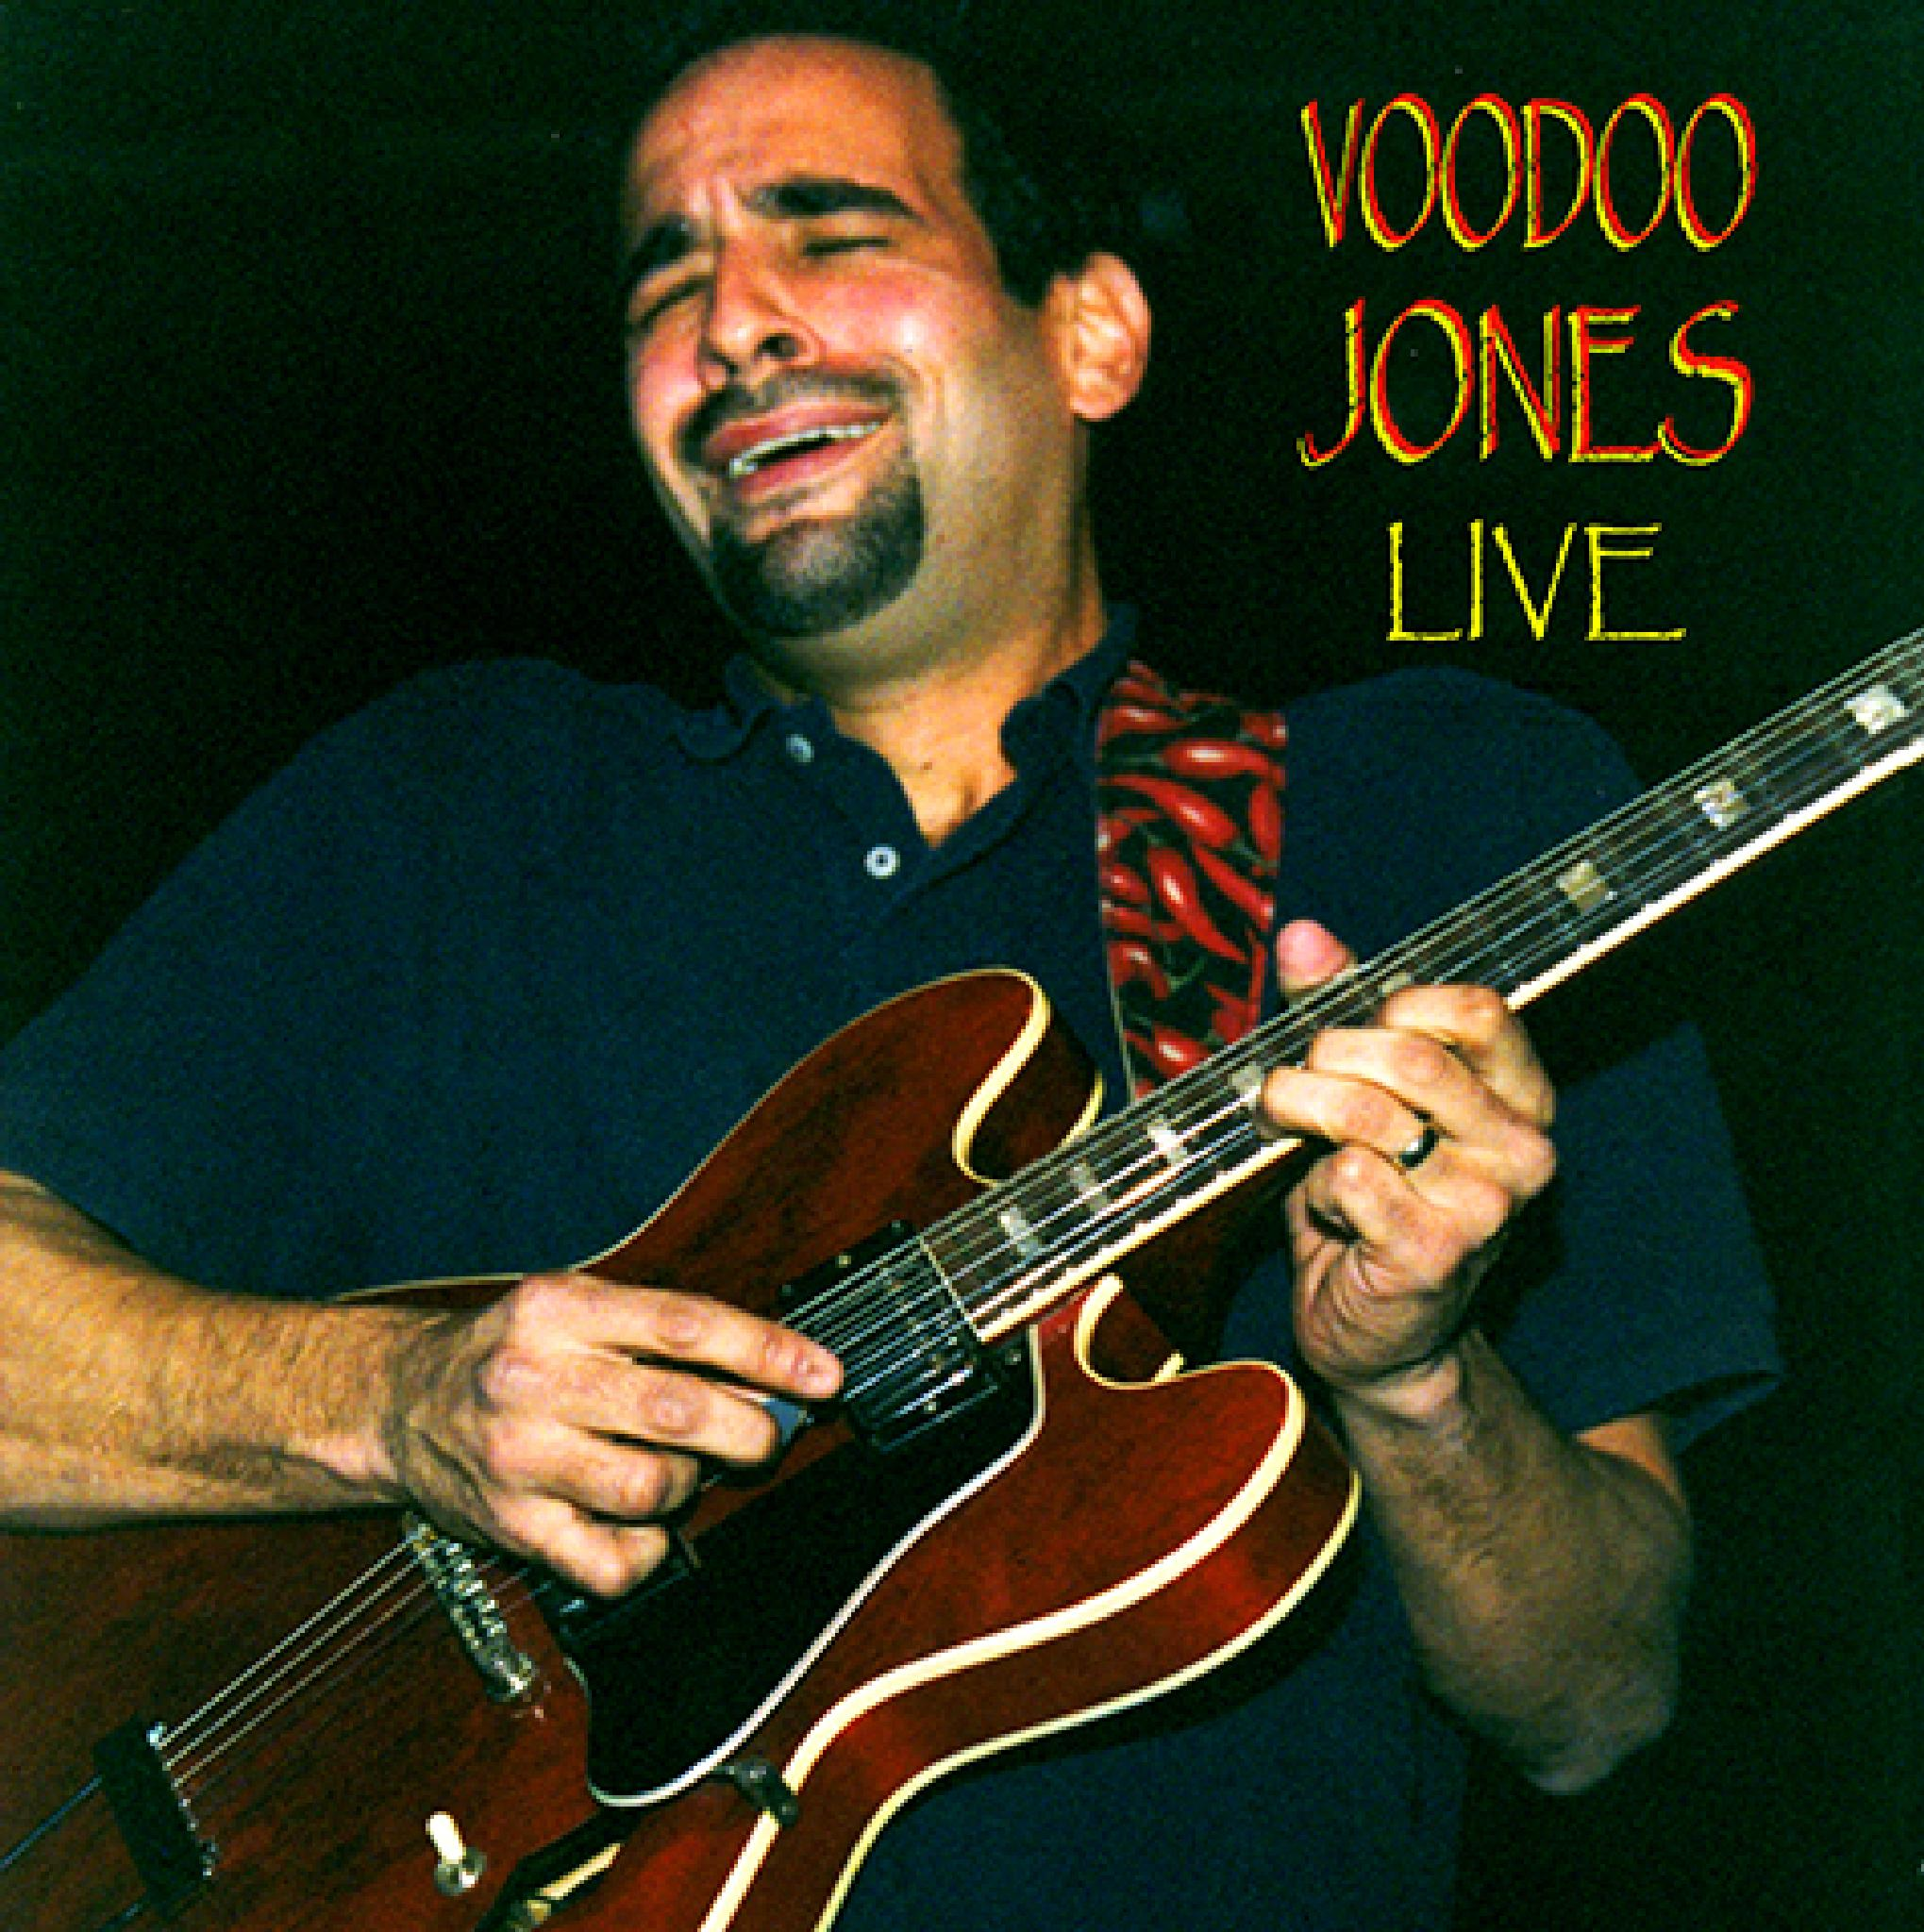 Voodoo Jones / LIVE by TJ / A H Wolf Photography